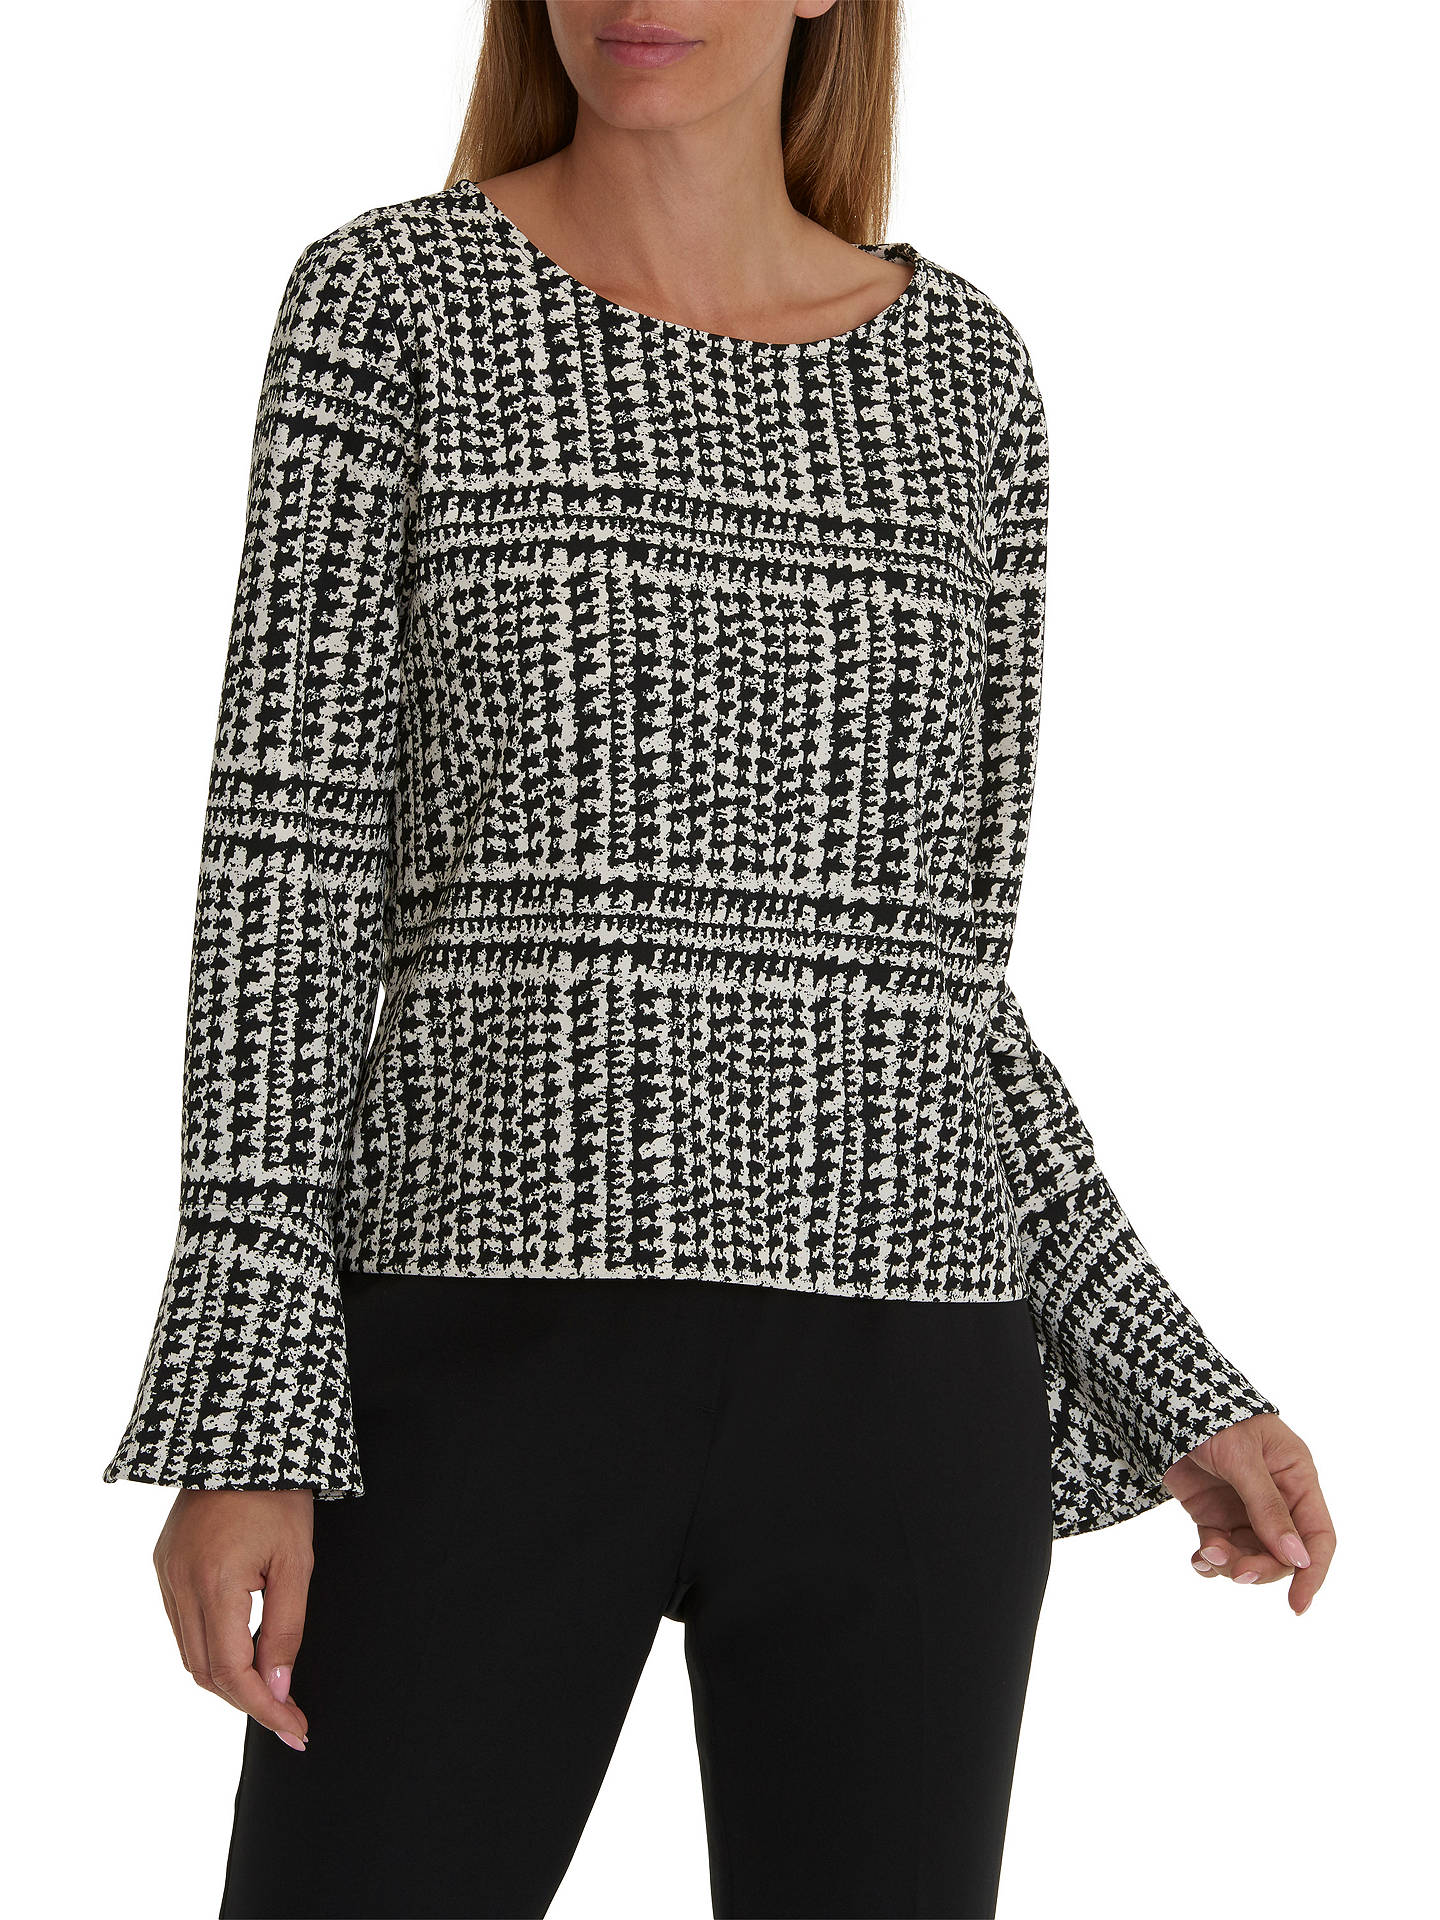 BuyBetty & Co. Photo Print Top, Black/Cream, 10 Online at johnlewis.com